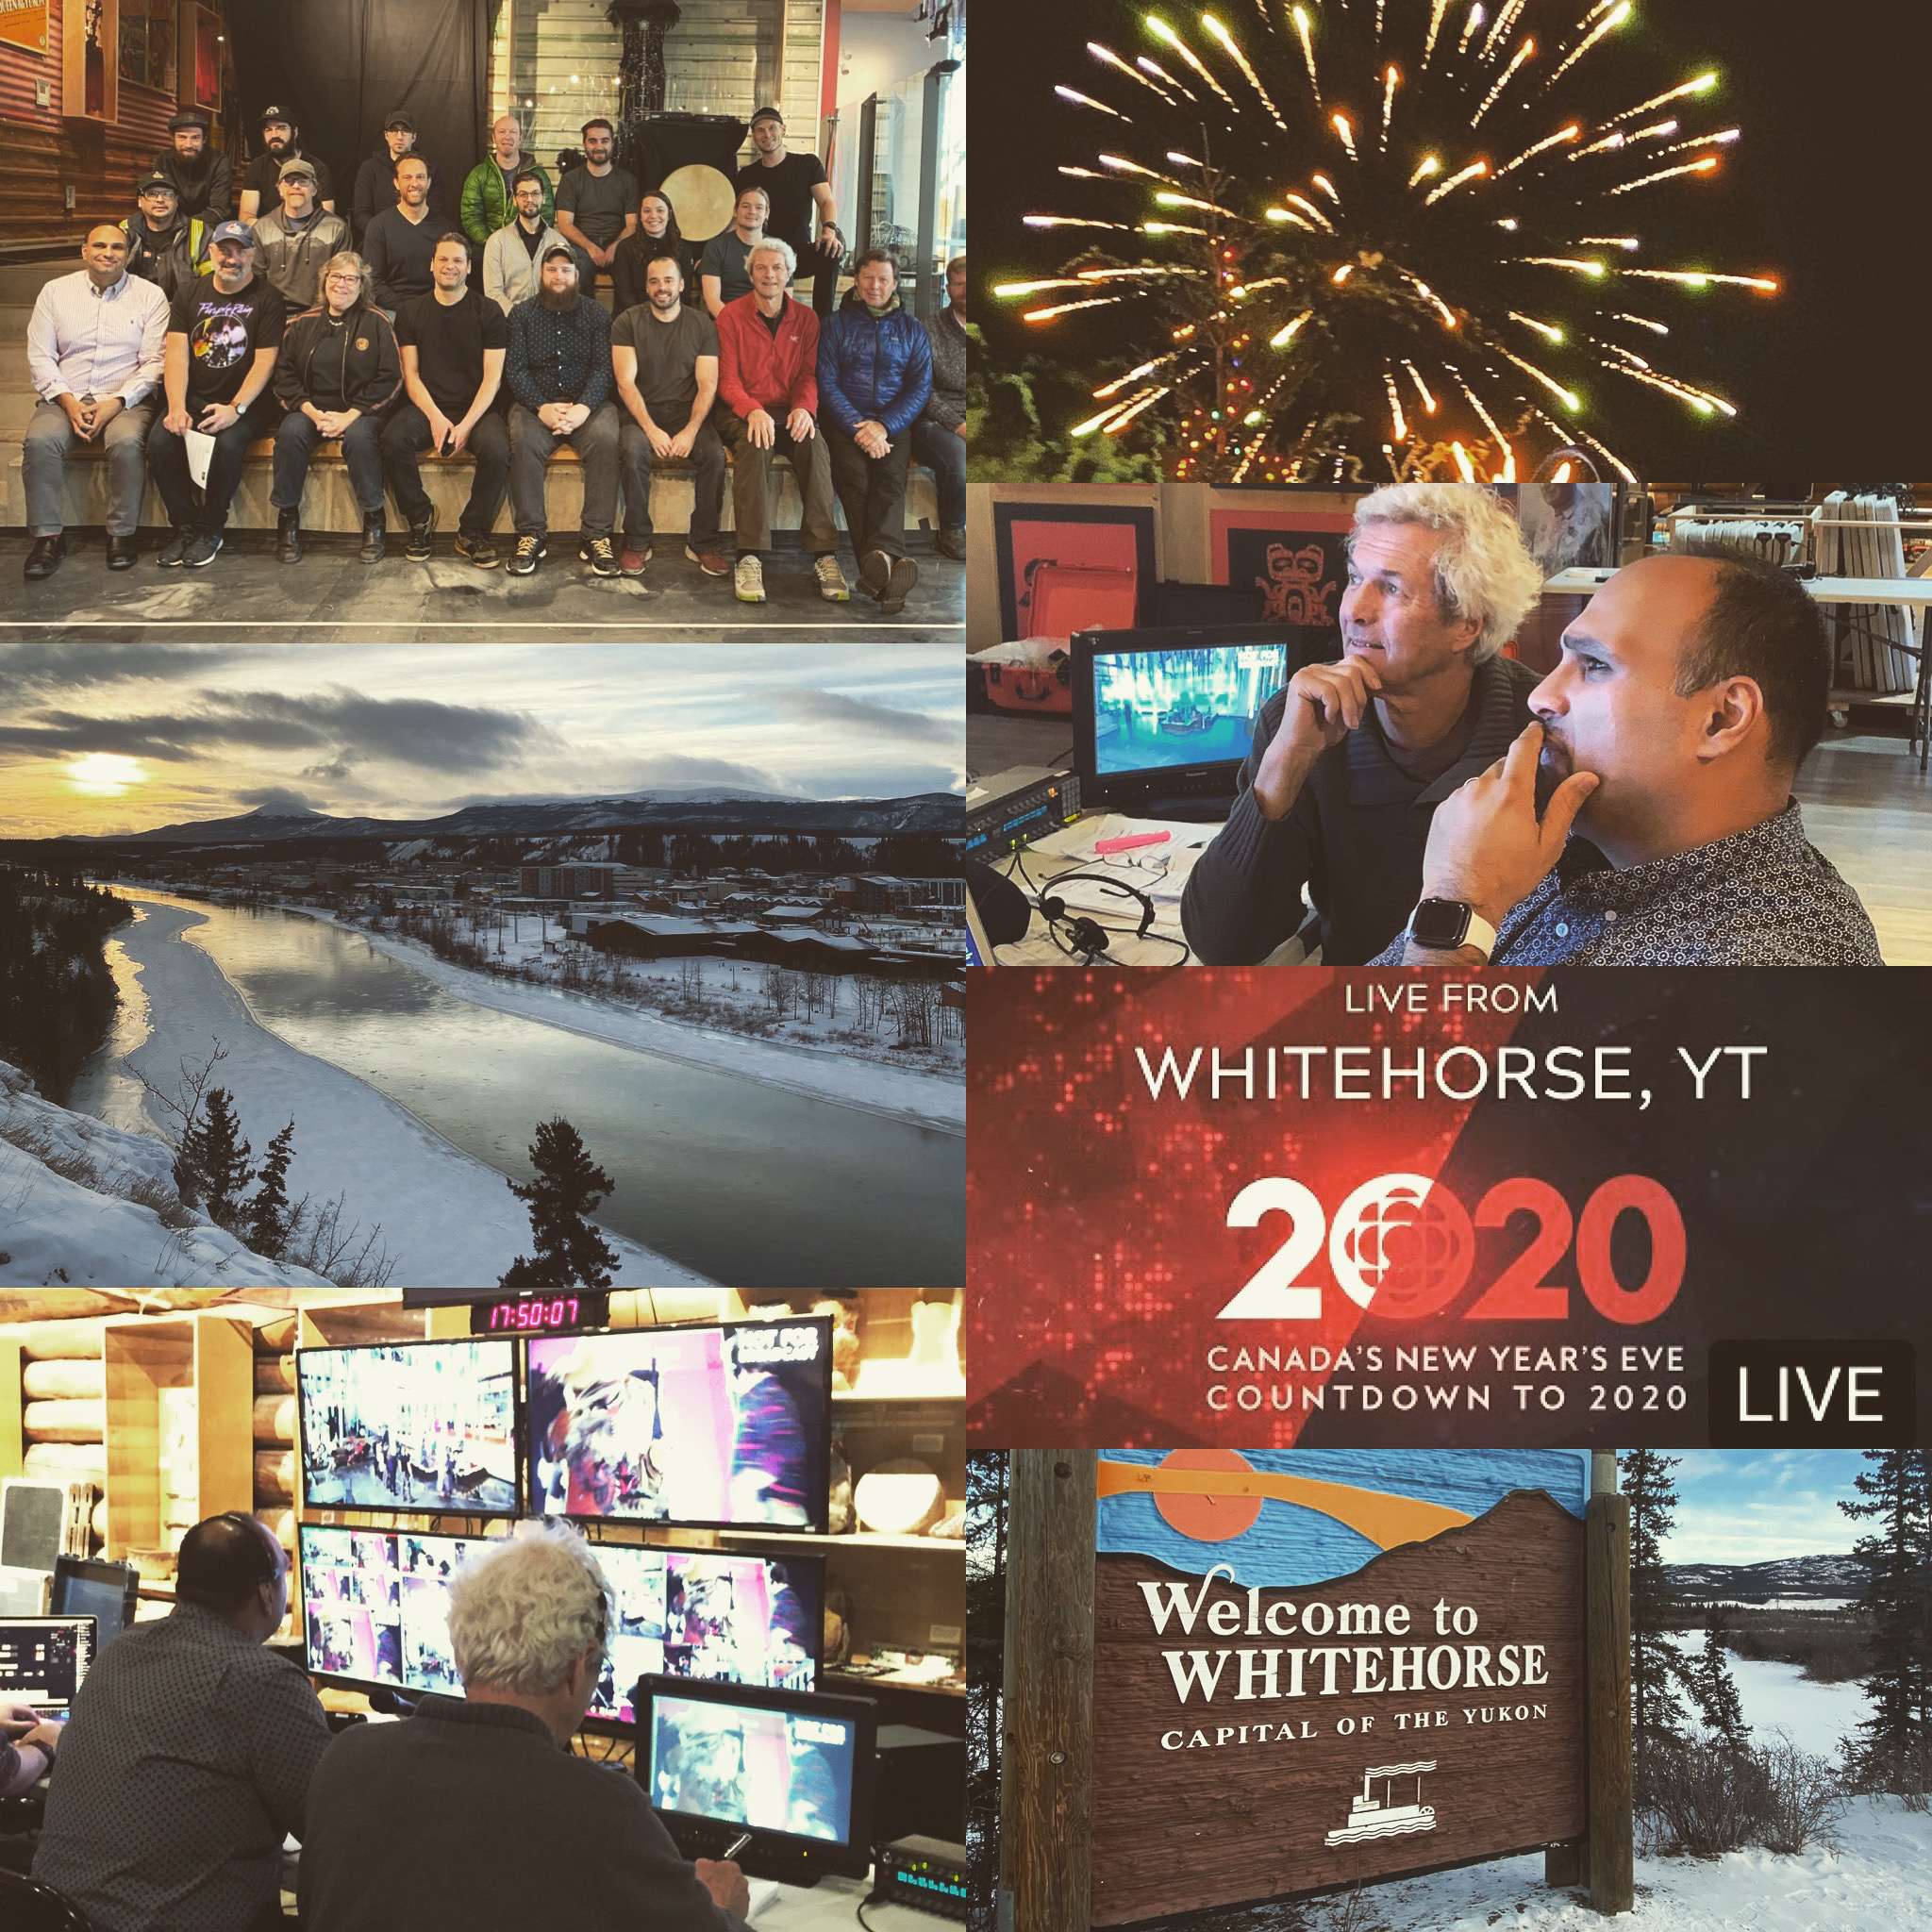 CBC NYE LIVE From Whitehorse